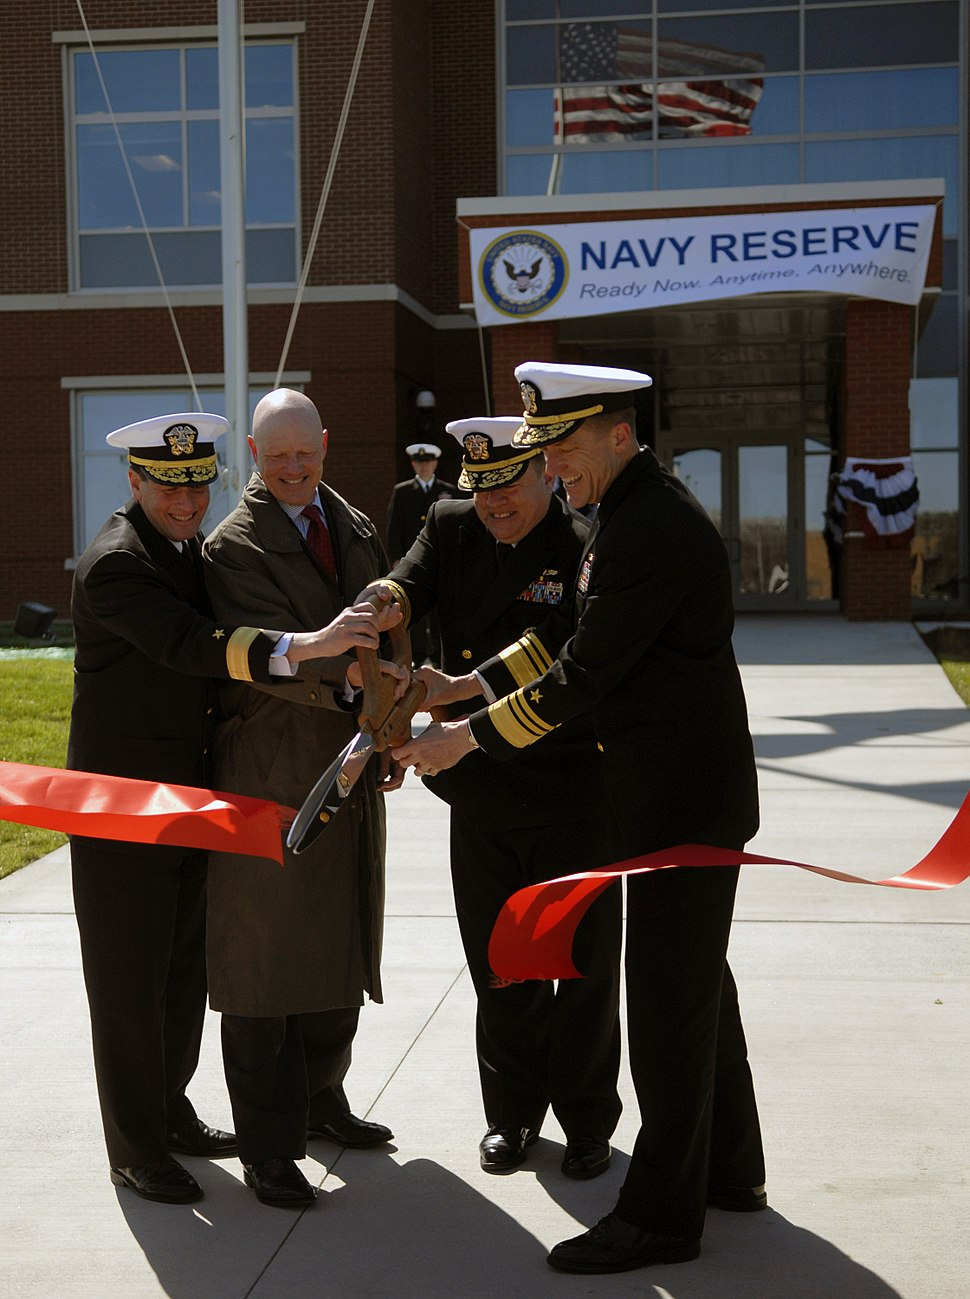 US Navy 090324-N-6367N-175 Admirals participate in the ribbon cutting ceremony for the opening of the new Navy Reserve Forces Command Headquarters at Naval Station Norfolk